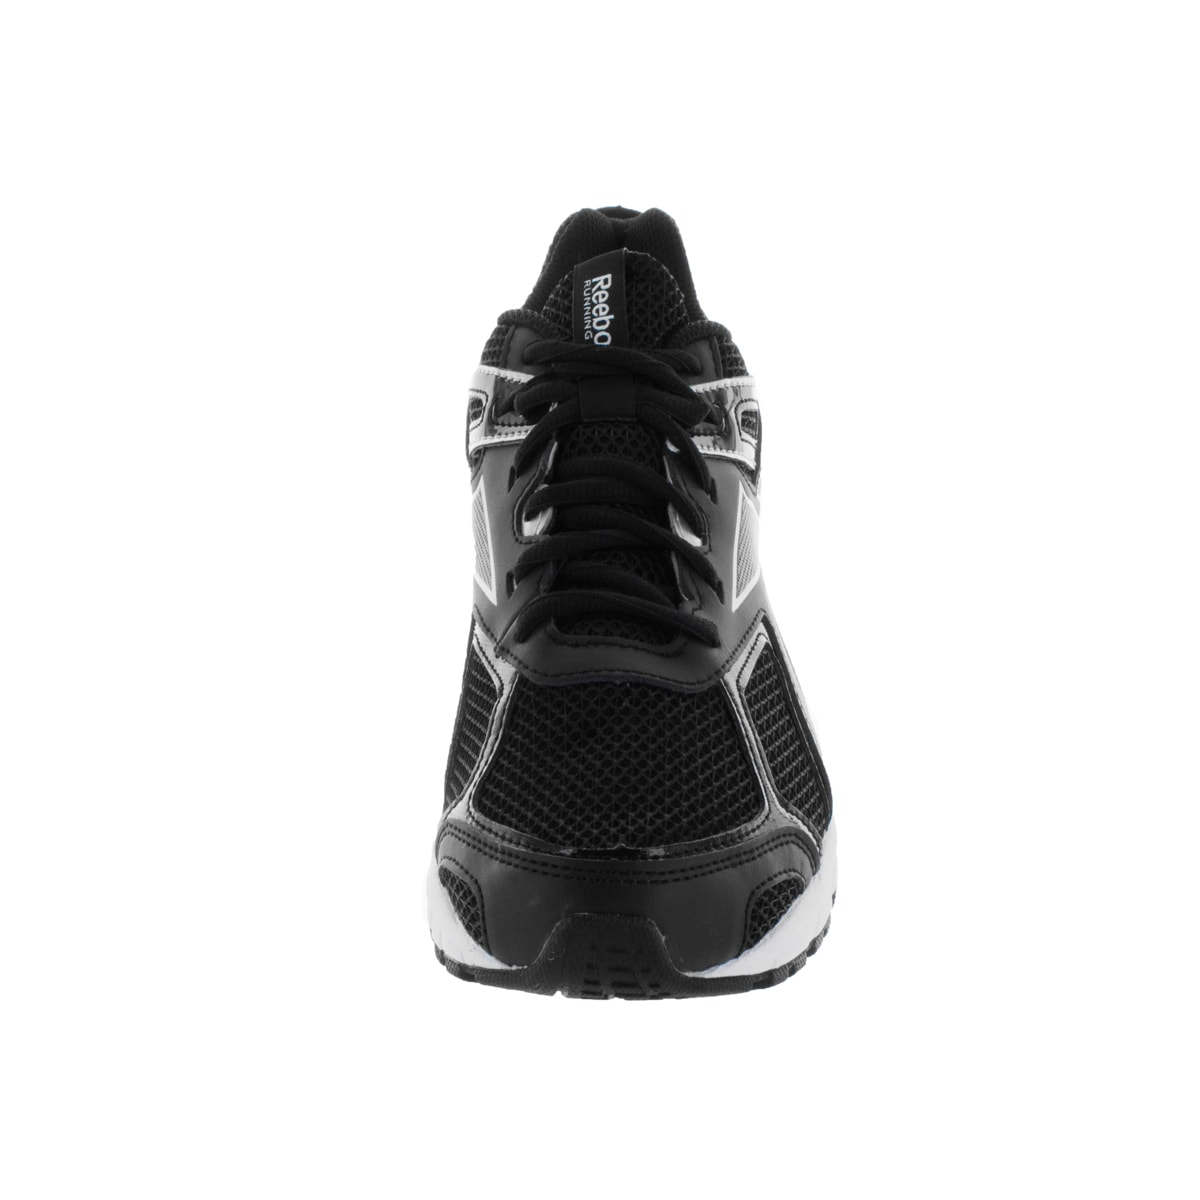 6dd8f4b98e2d Shop Reebok Men s Quickchase Black White Synthetic Running Shoe - Free  Shipping Today - Overstock.com - 12115968